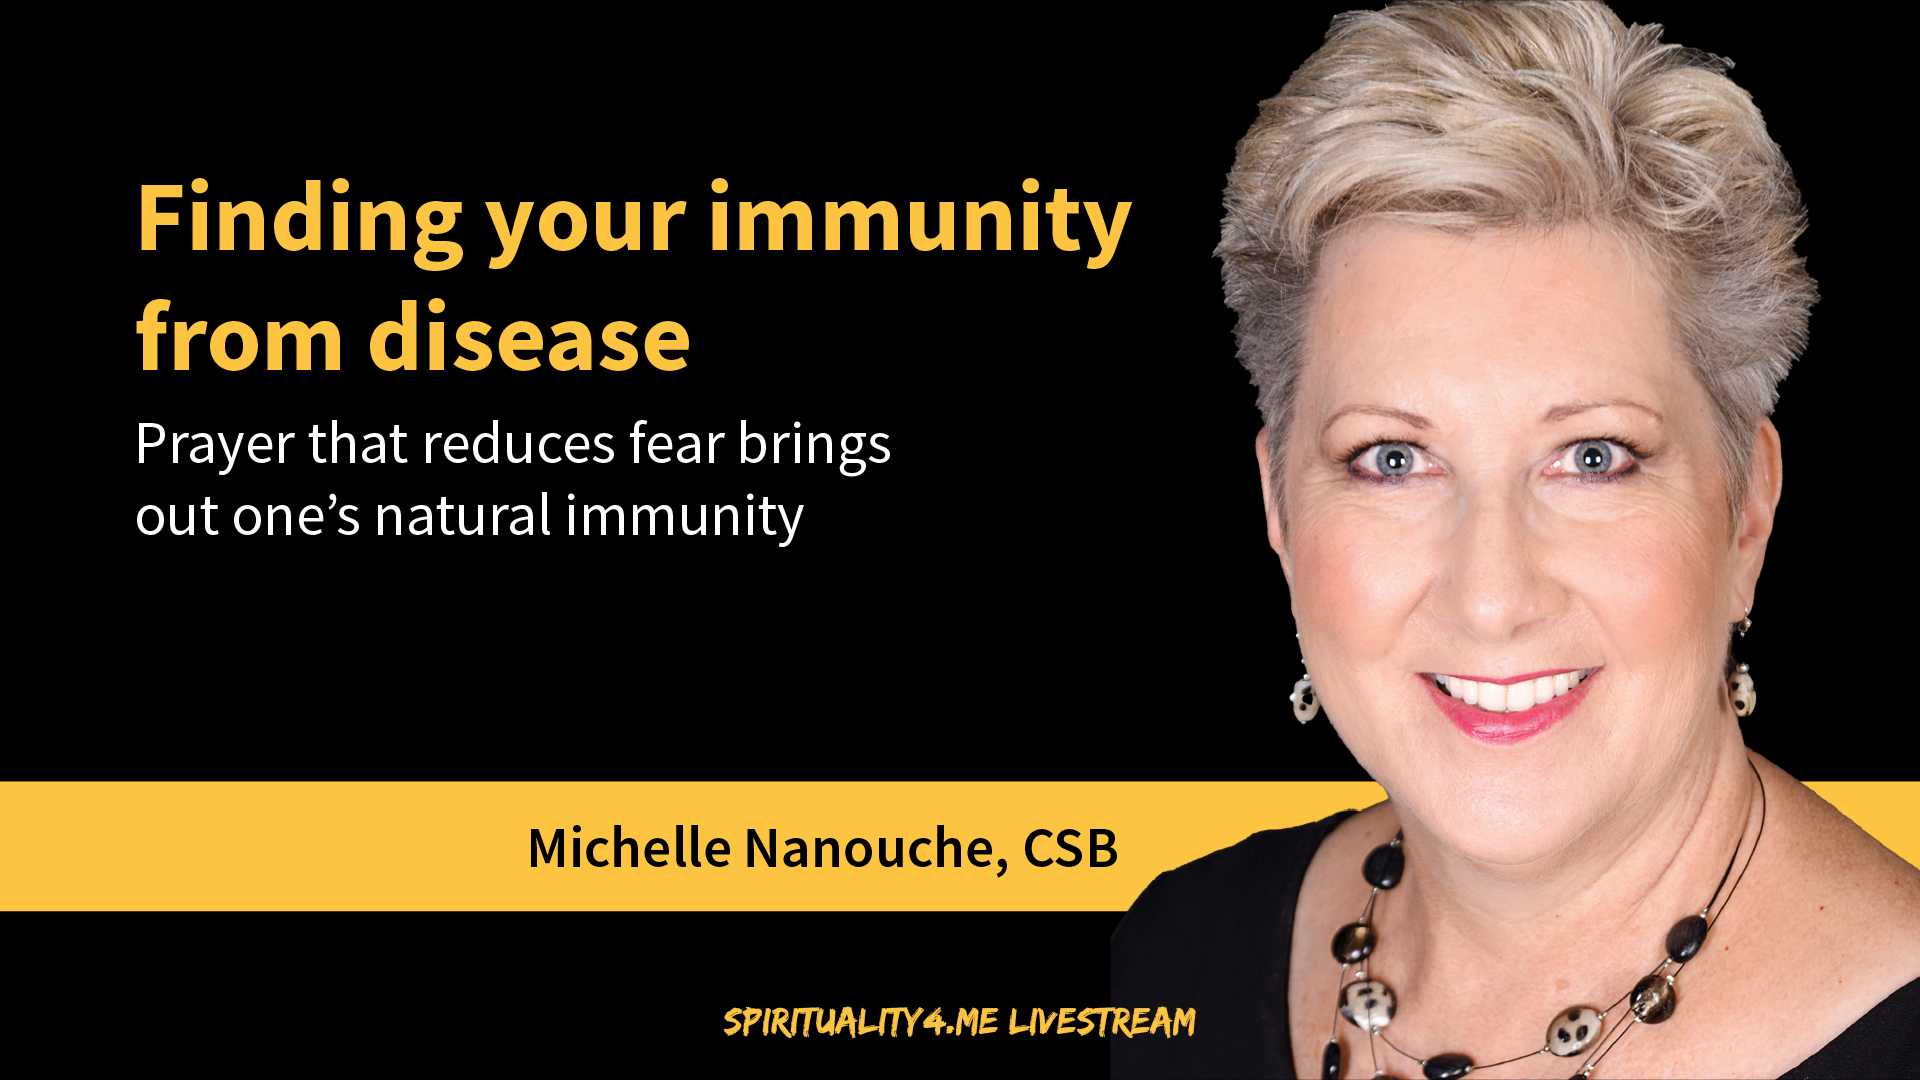 """Finding your immunity from disease"" by Michelle Nanouche"